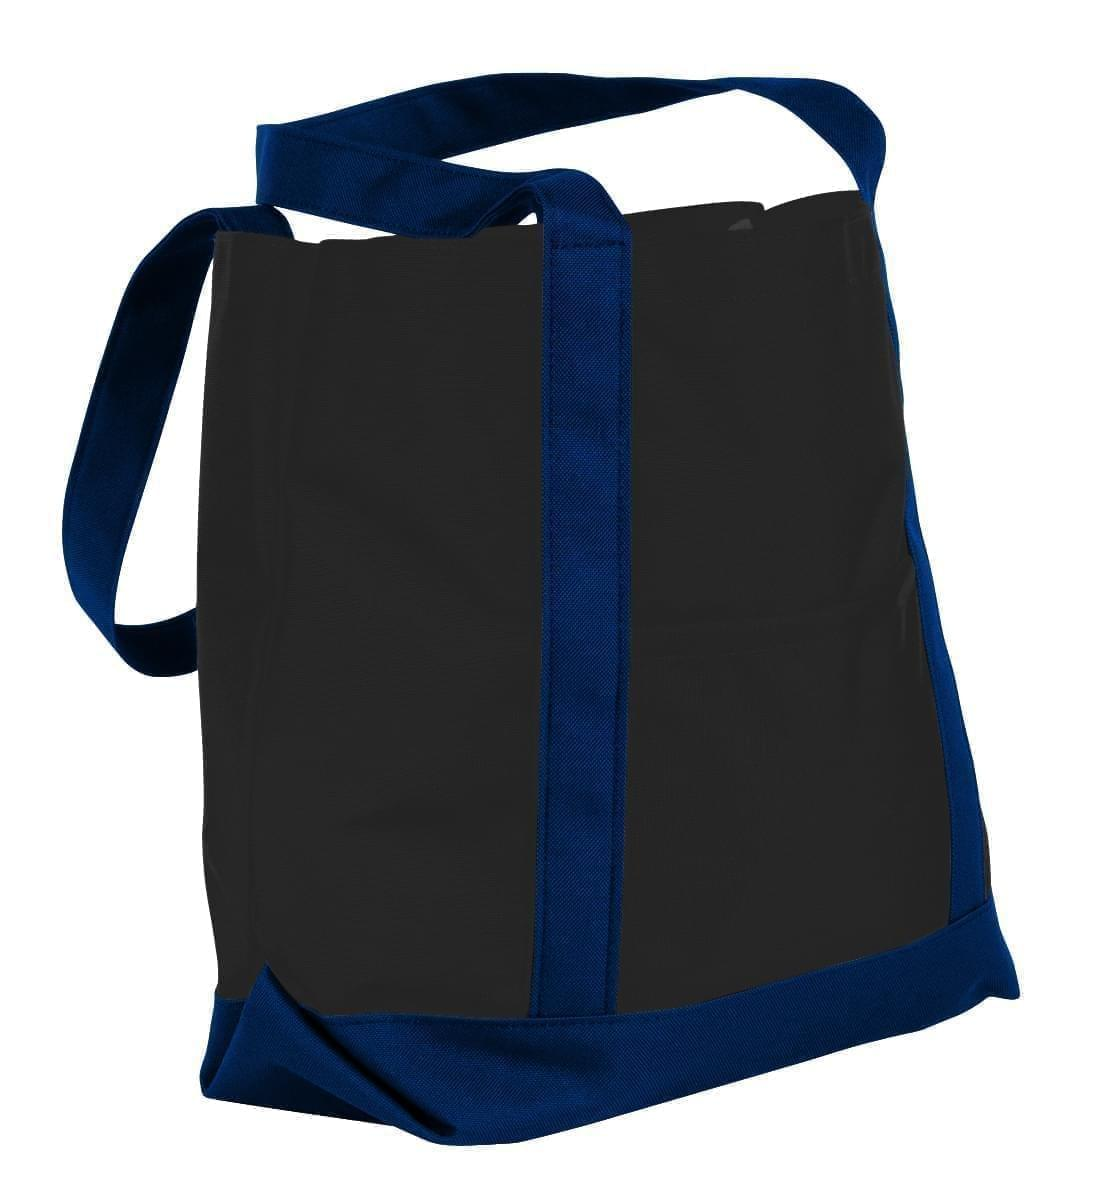 USA Made Canvas Fashion Tote Bags, Black-Navy, XAACL1UAHI